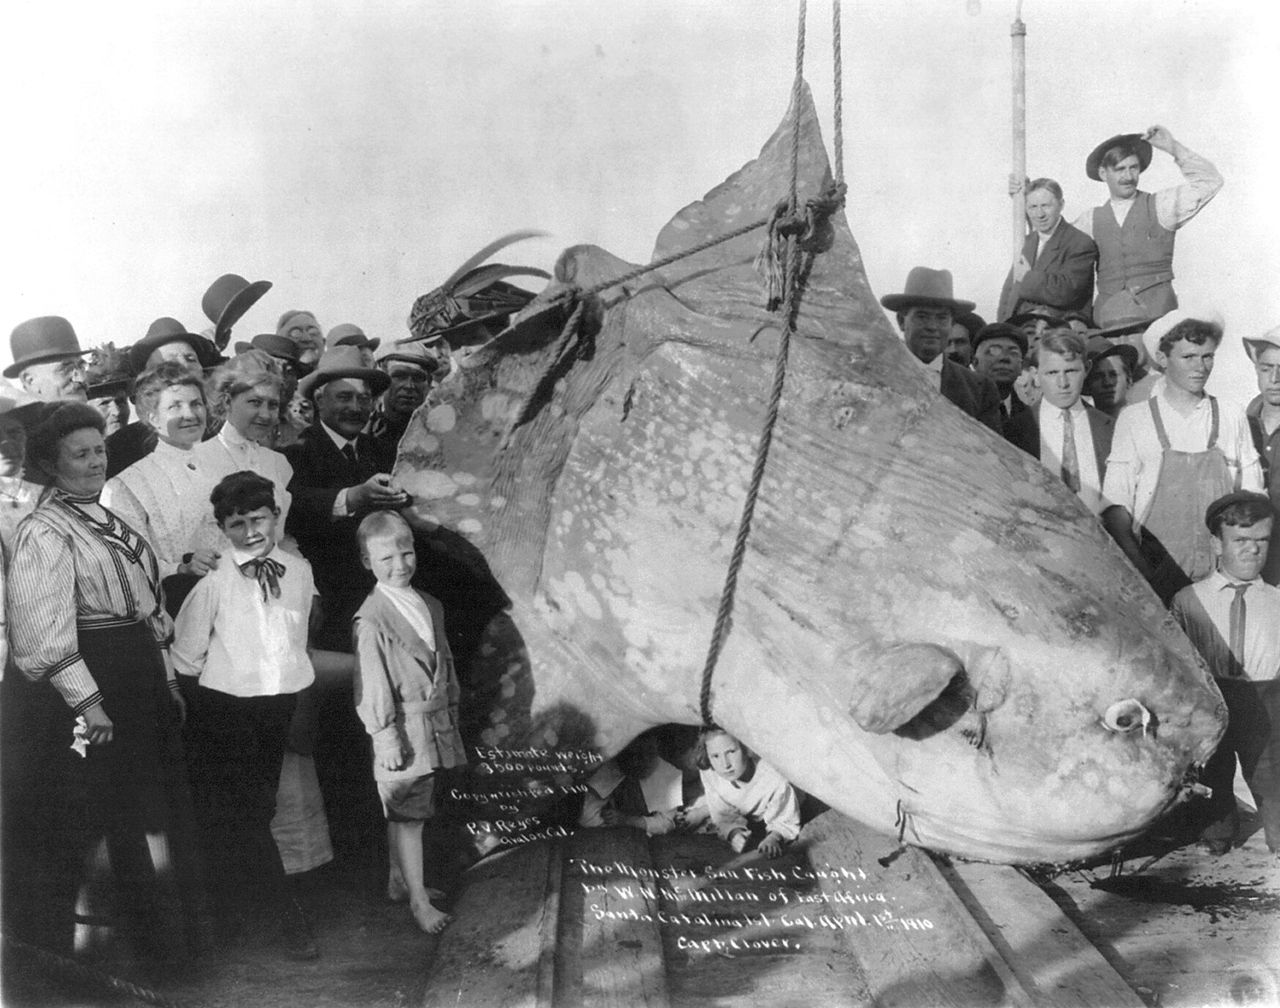 A sunfish caught in 1910, with an estimated weight of 1600 kg (3500 lb)